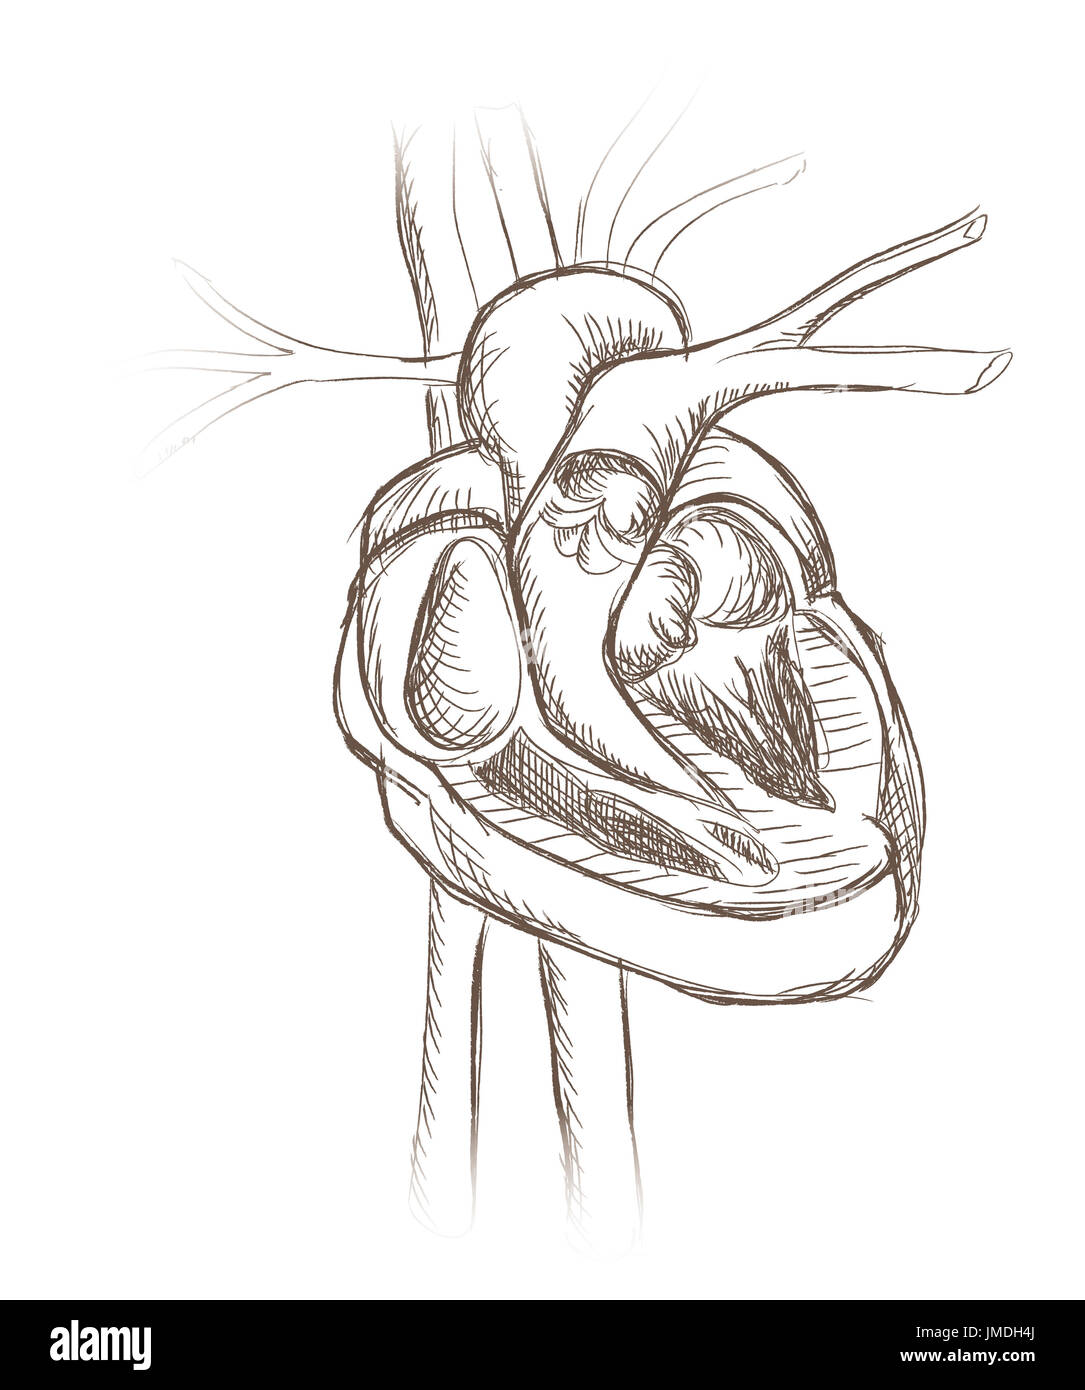 Human heart anatomy engraving. Heart structure retro sketch Stock ...